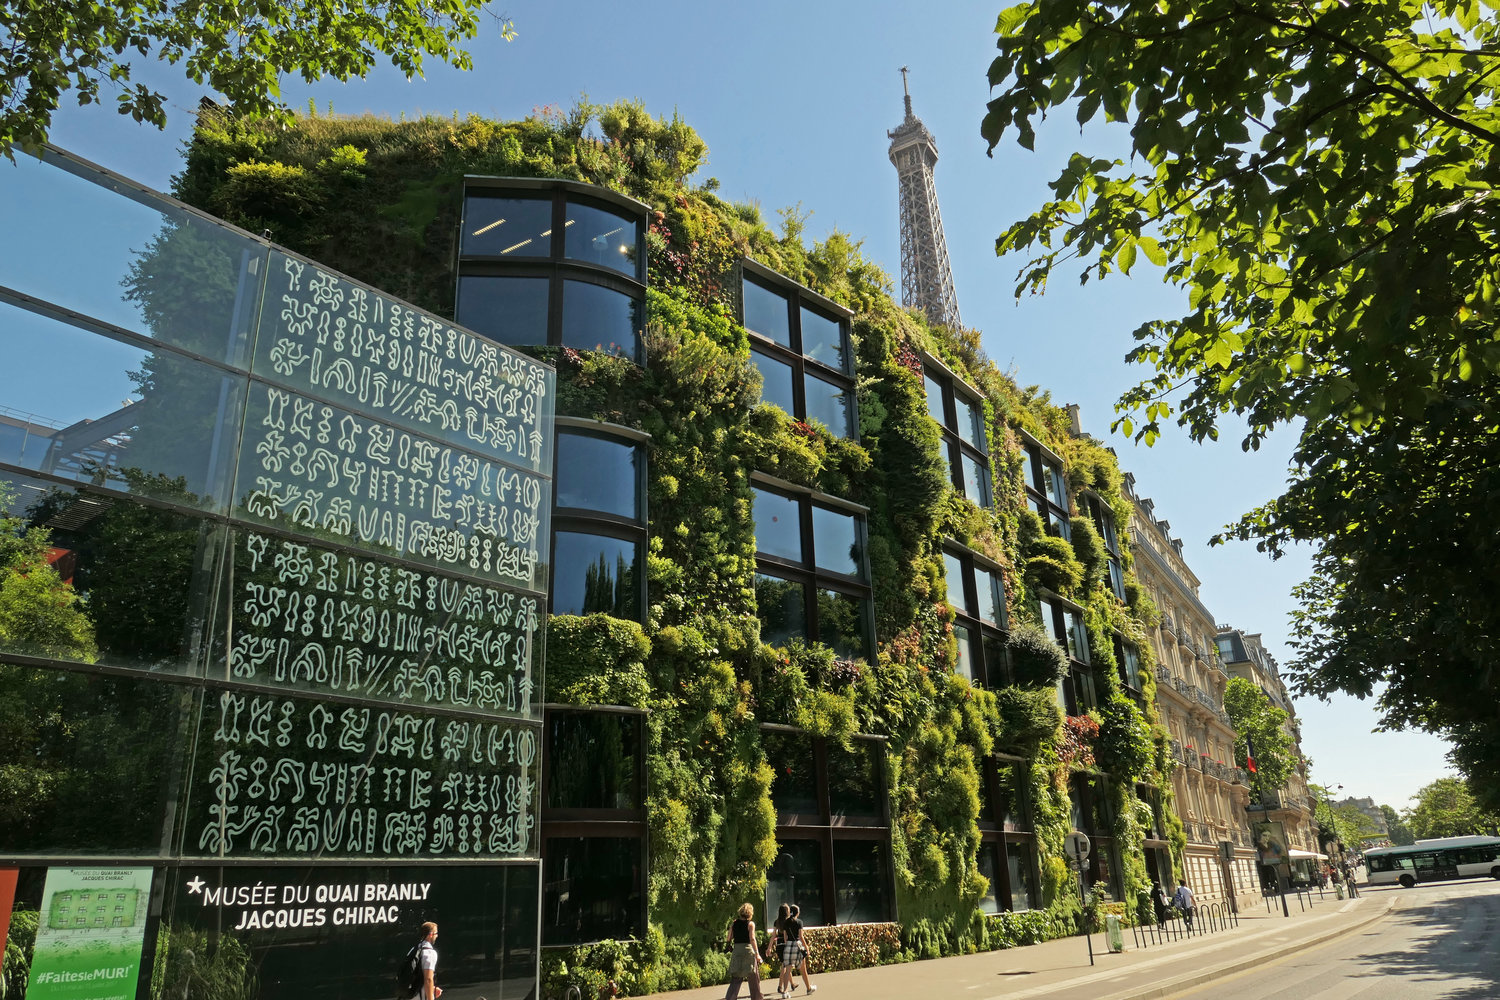 Mesmerizing Museums in Paris You Will Never Forget Once You Have Seen - Musée du Quai Branly museum Mesmerizing Museums in Paris You Will Never Forget Once You Have Seen Mesmerizing Museums in Paris You Will Never Forget Once You Have Seen Mus  e du Quai Branly